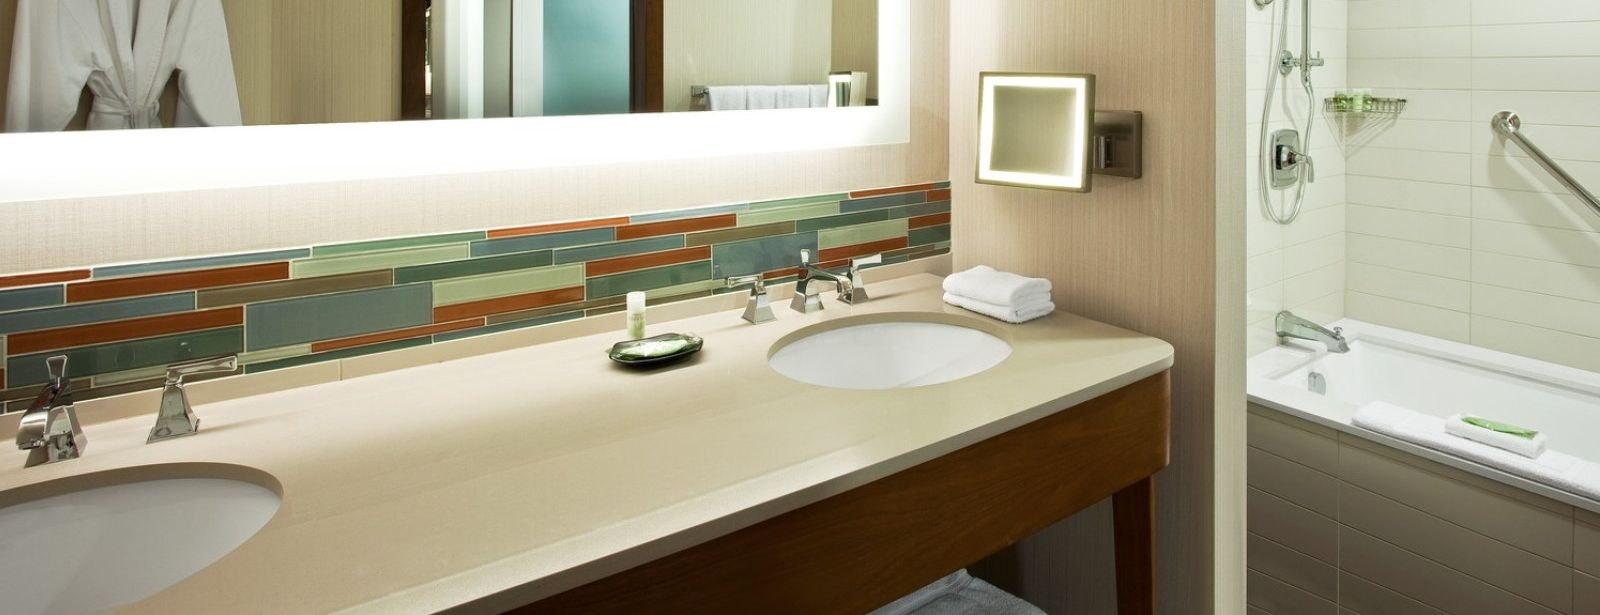 Hilton Head Hotels - The Westin - Grand Deluxe Bathroom